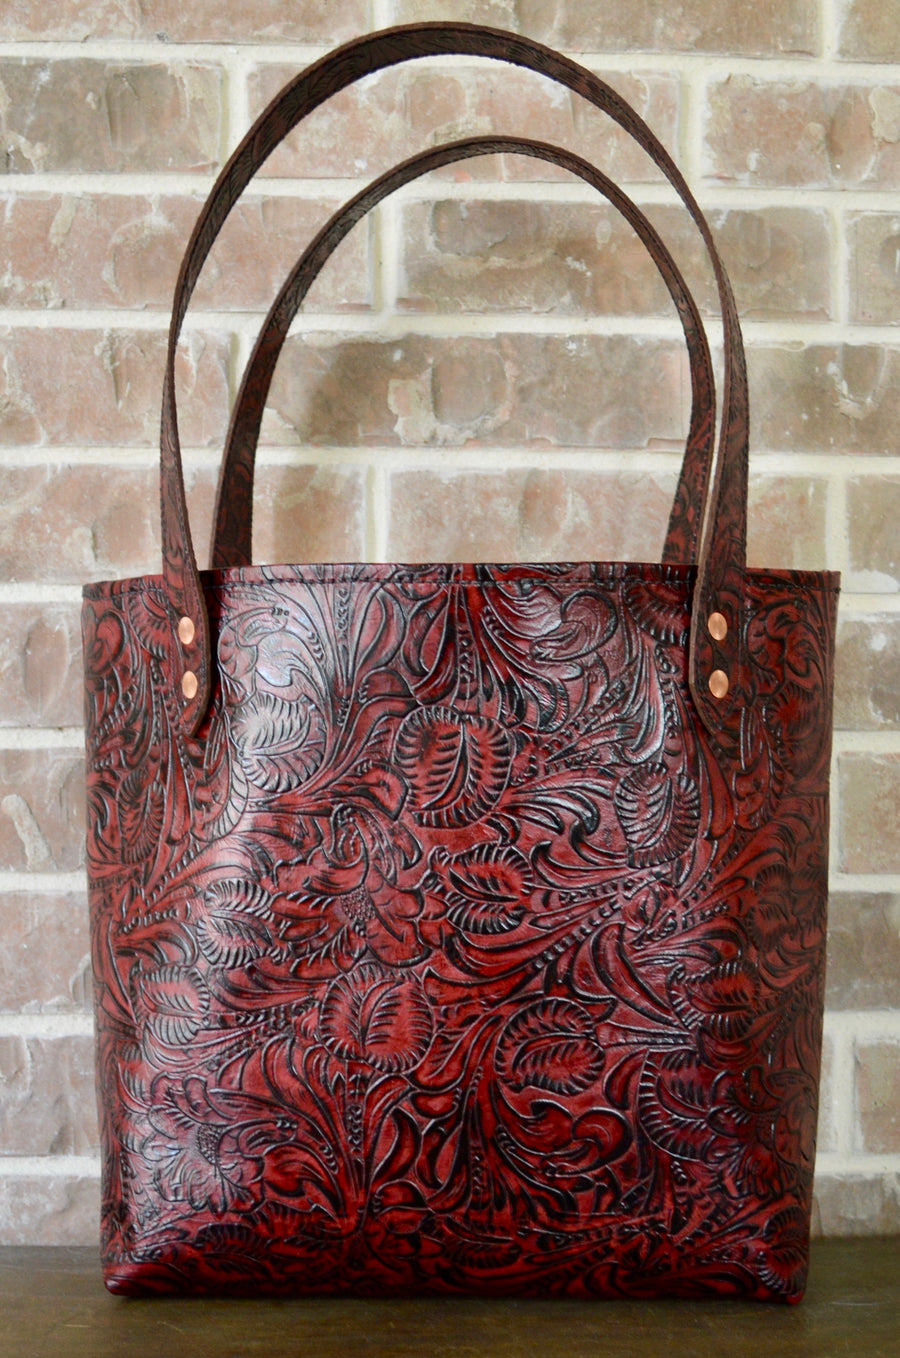 Totes: Lined Leather